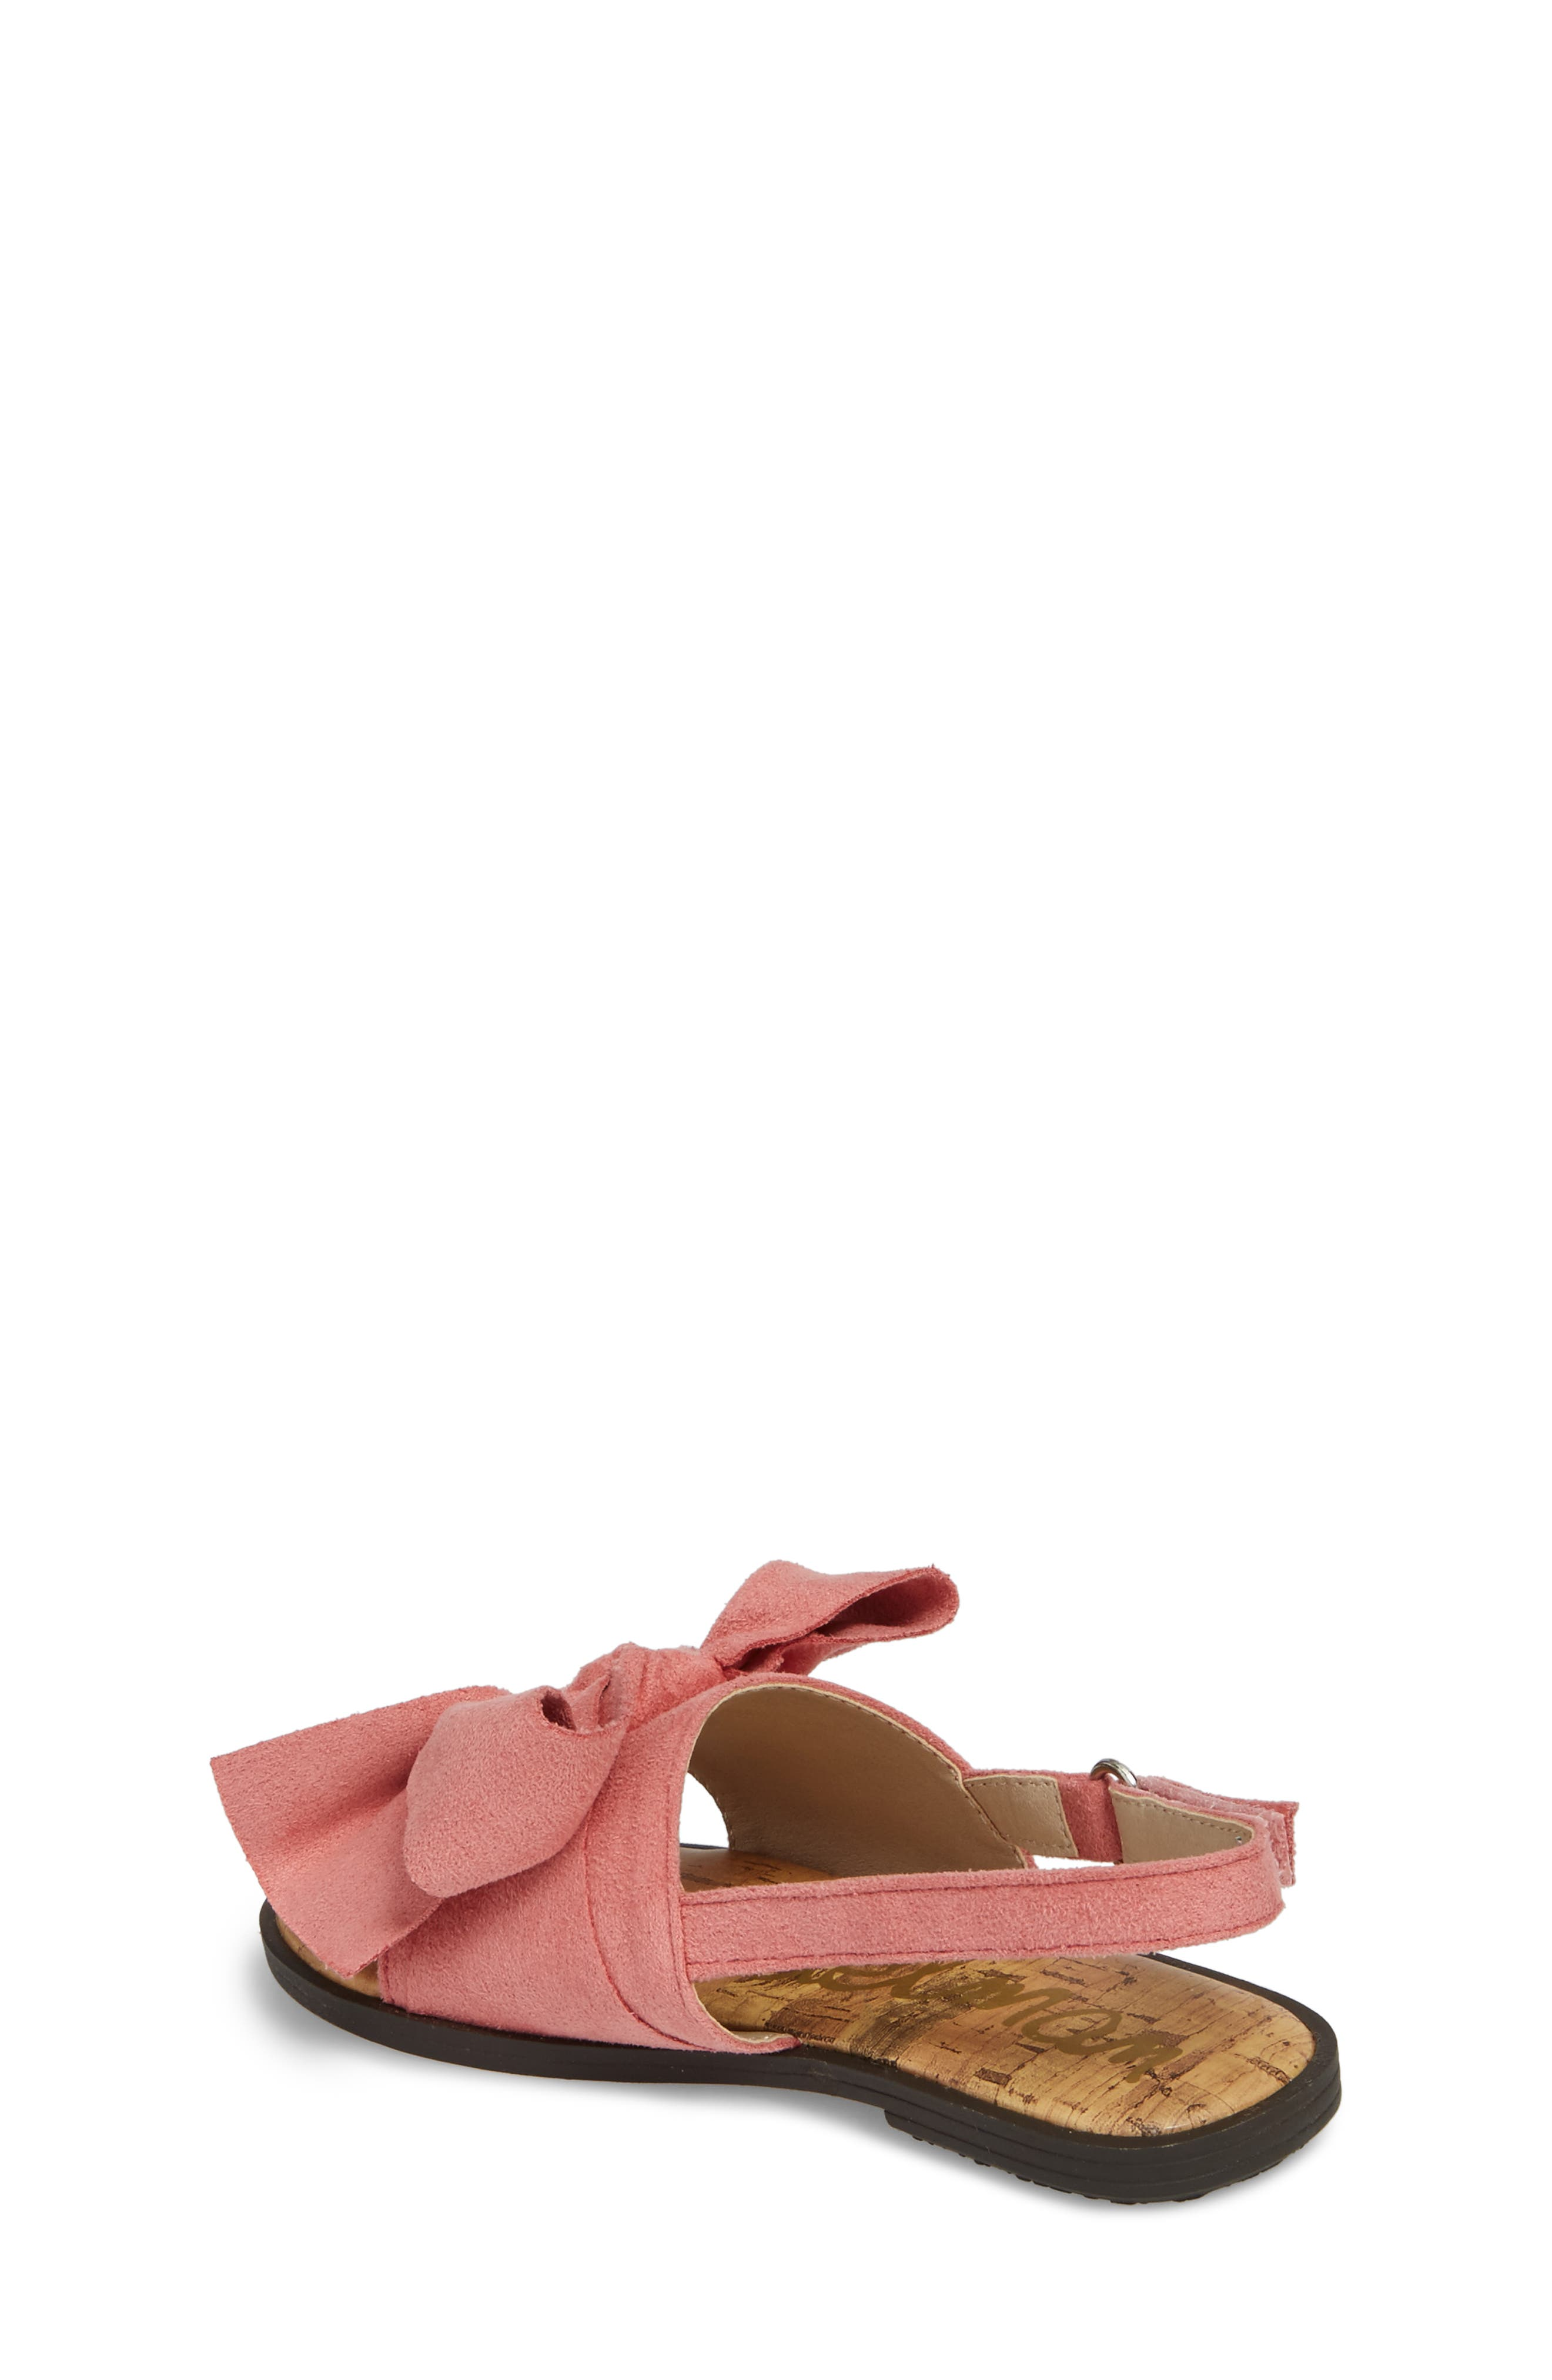 Gigi Bow Sandal,                             Alternate thumbnail 2, color,                             Pink Faux Suede